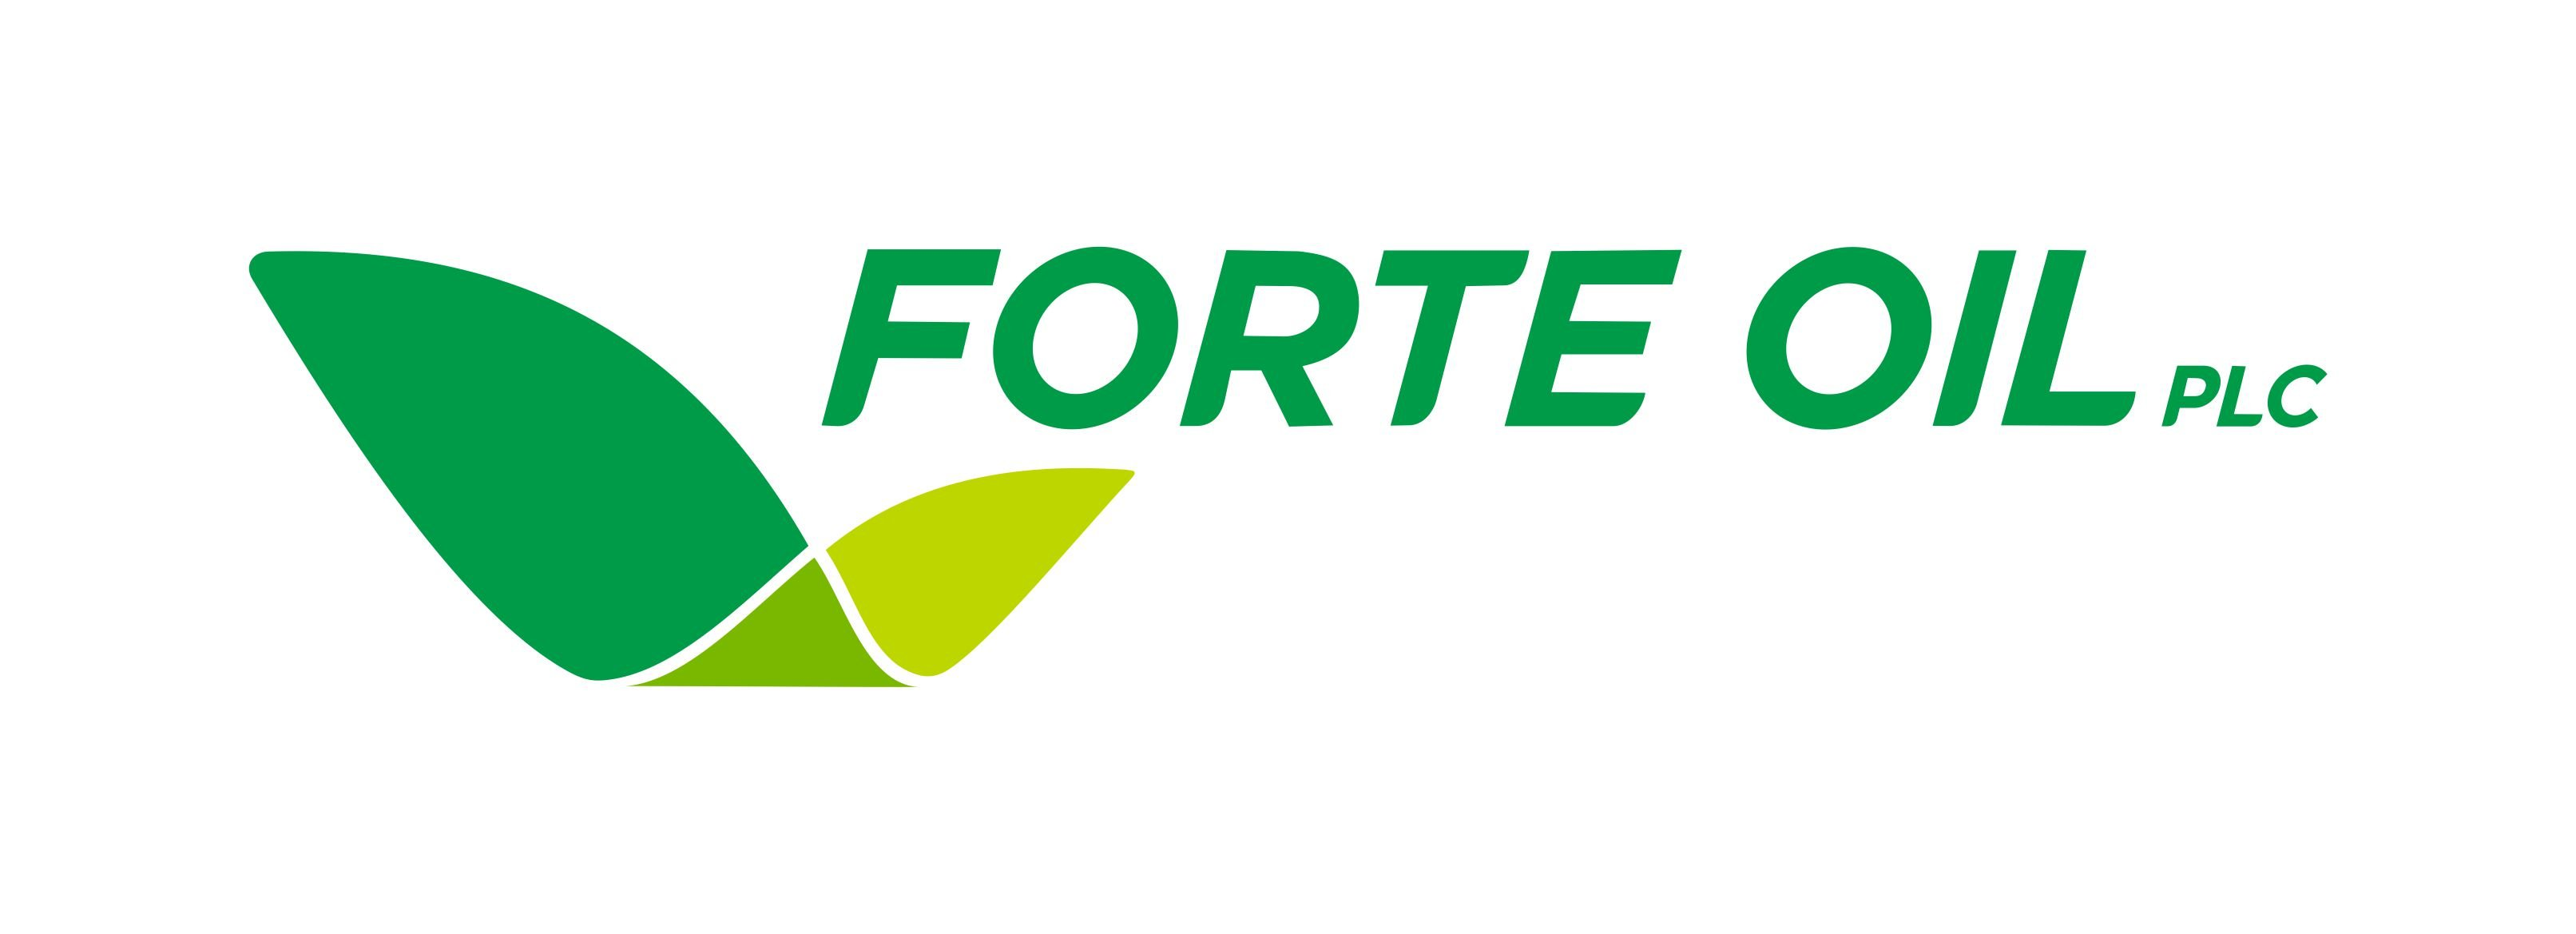 Forte Oil, Livestock Feeds, Total top losers' table